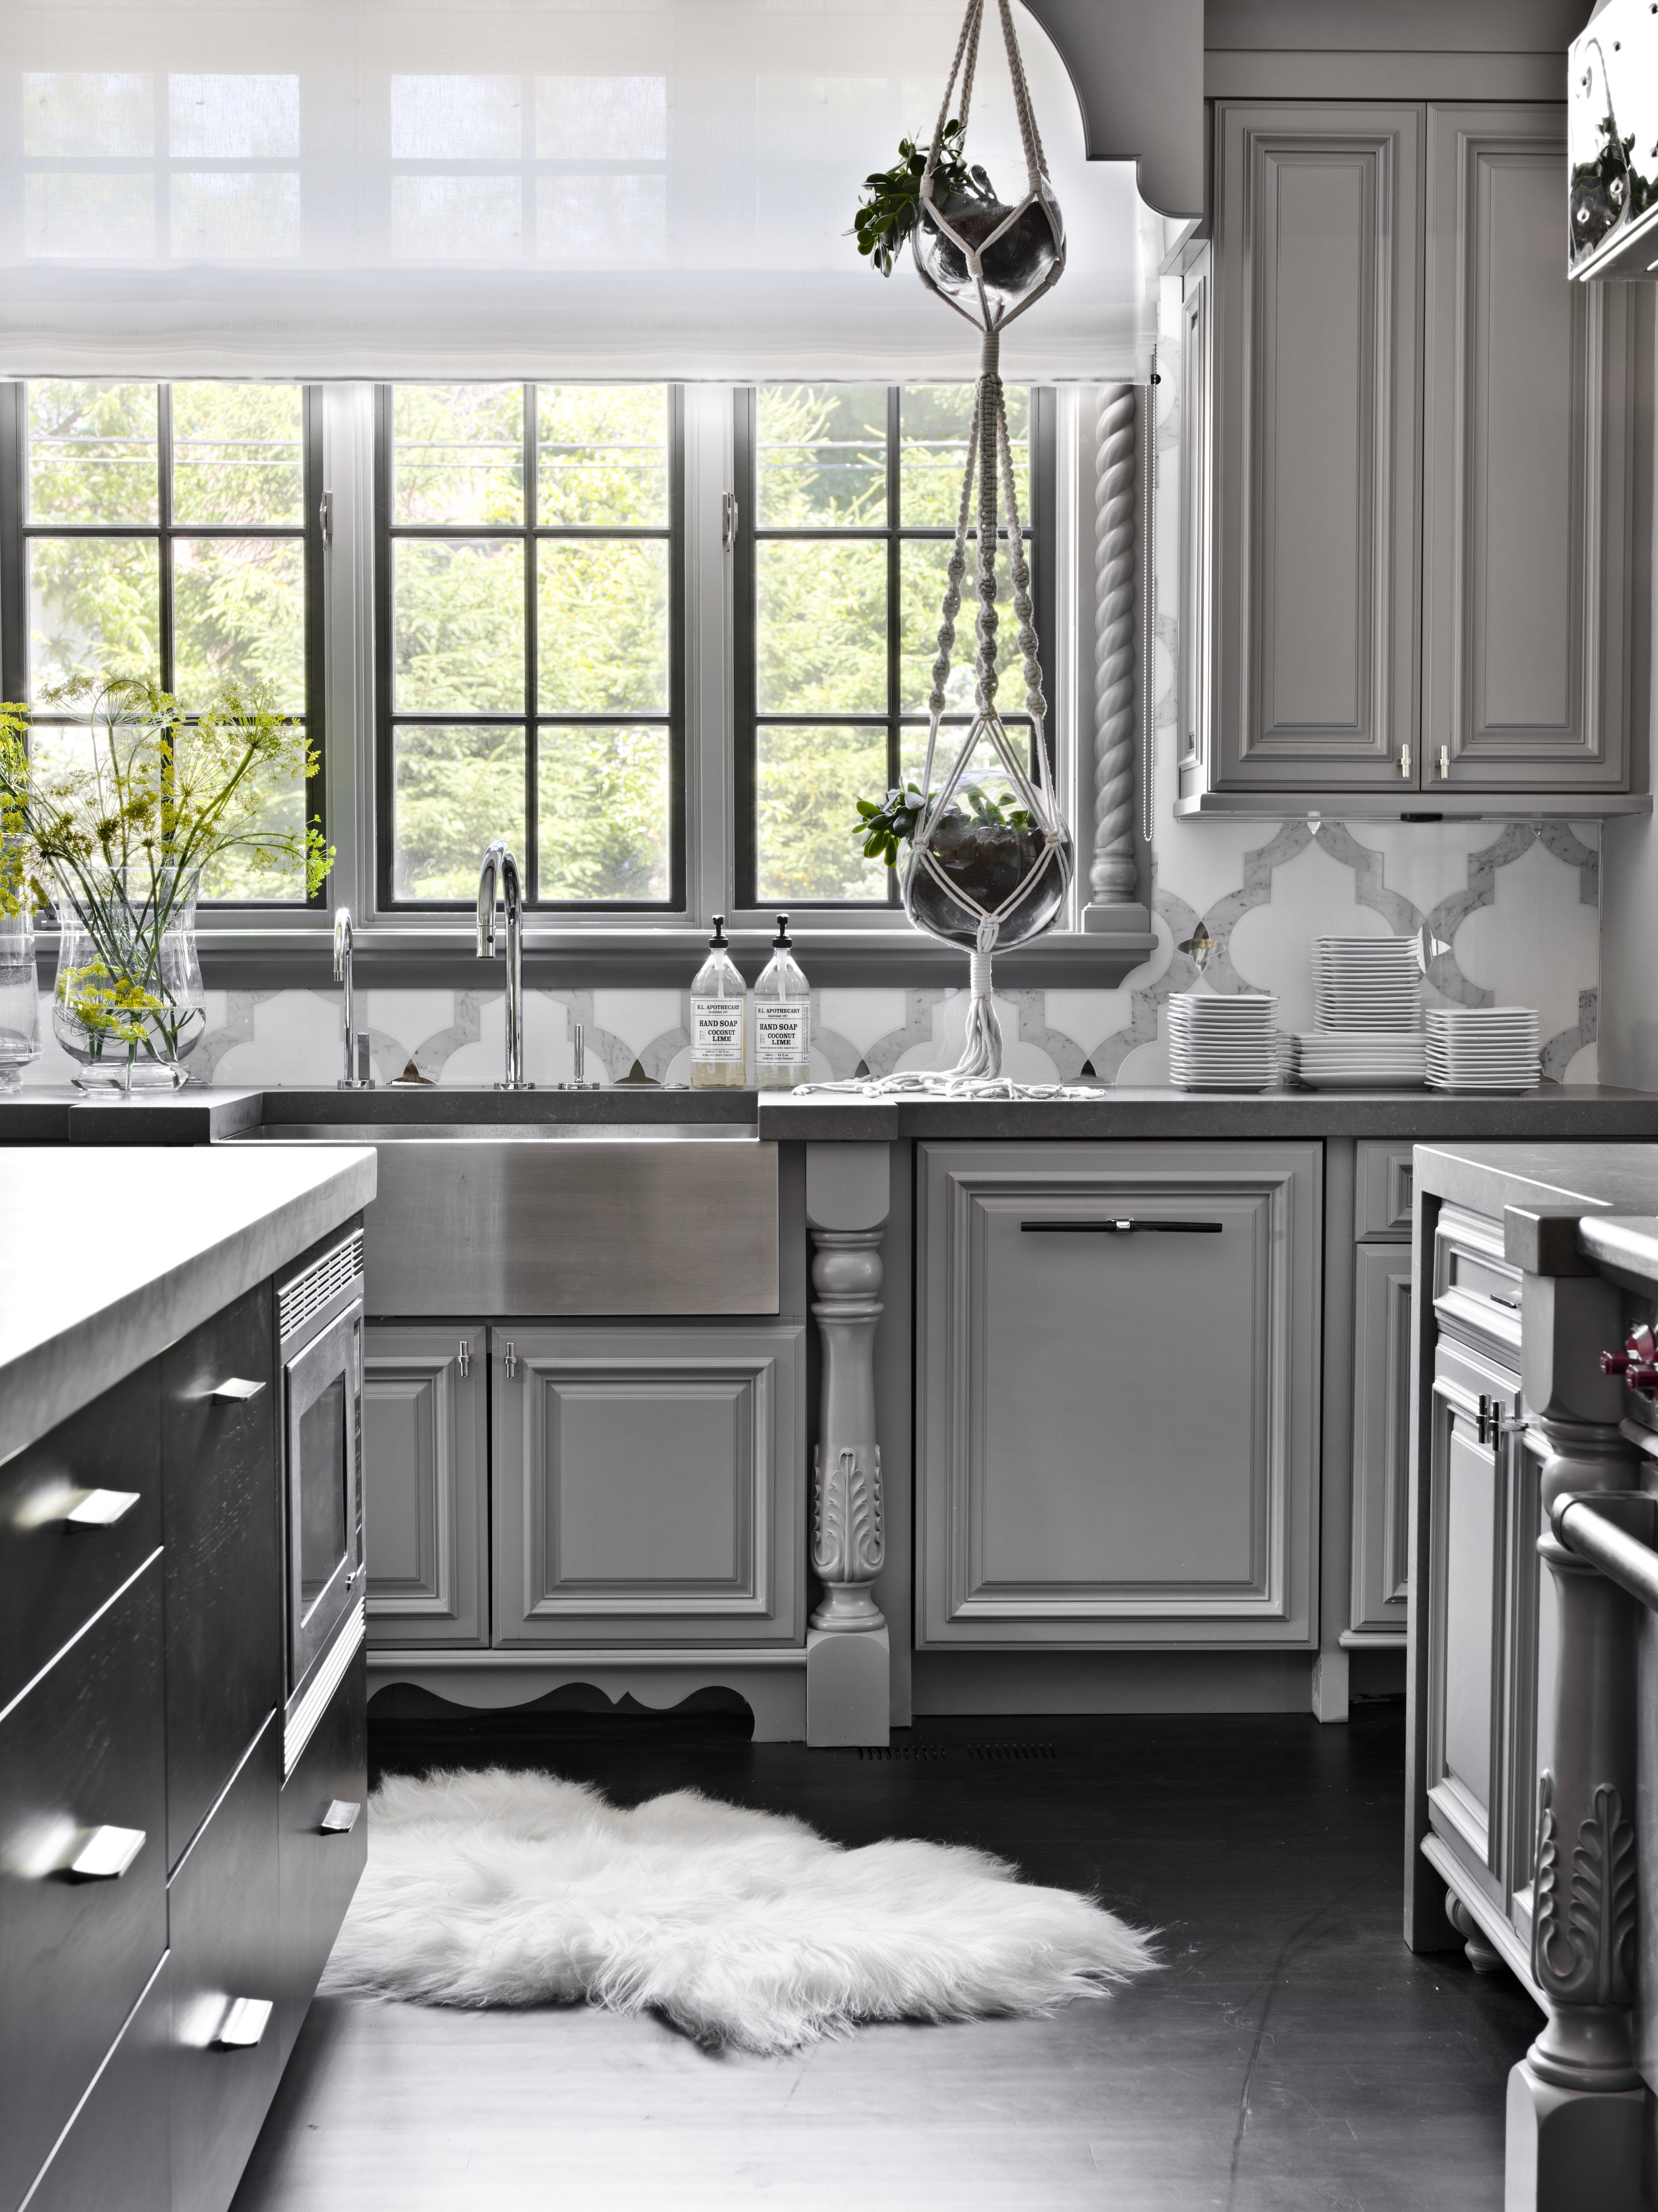 House Tour A Hinsdale Illinois Home Black And White